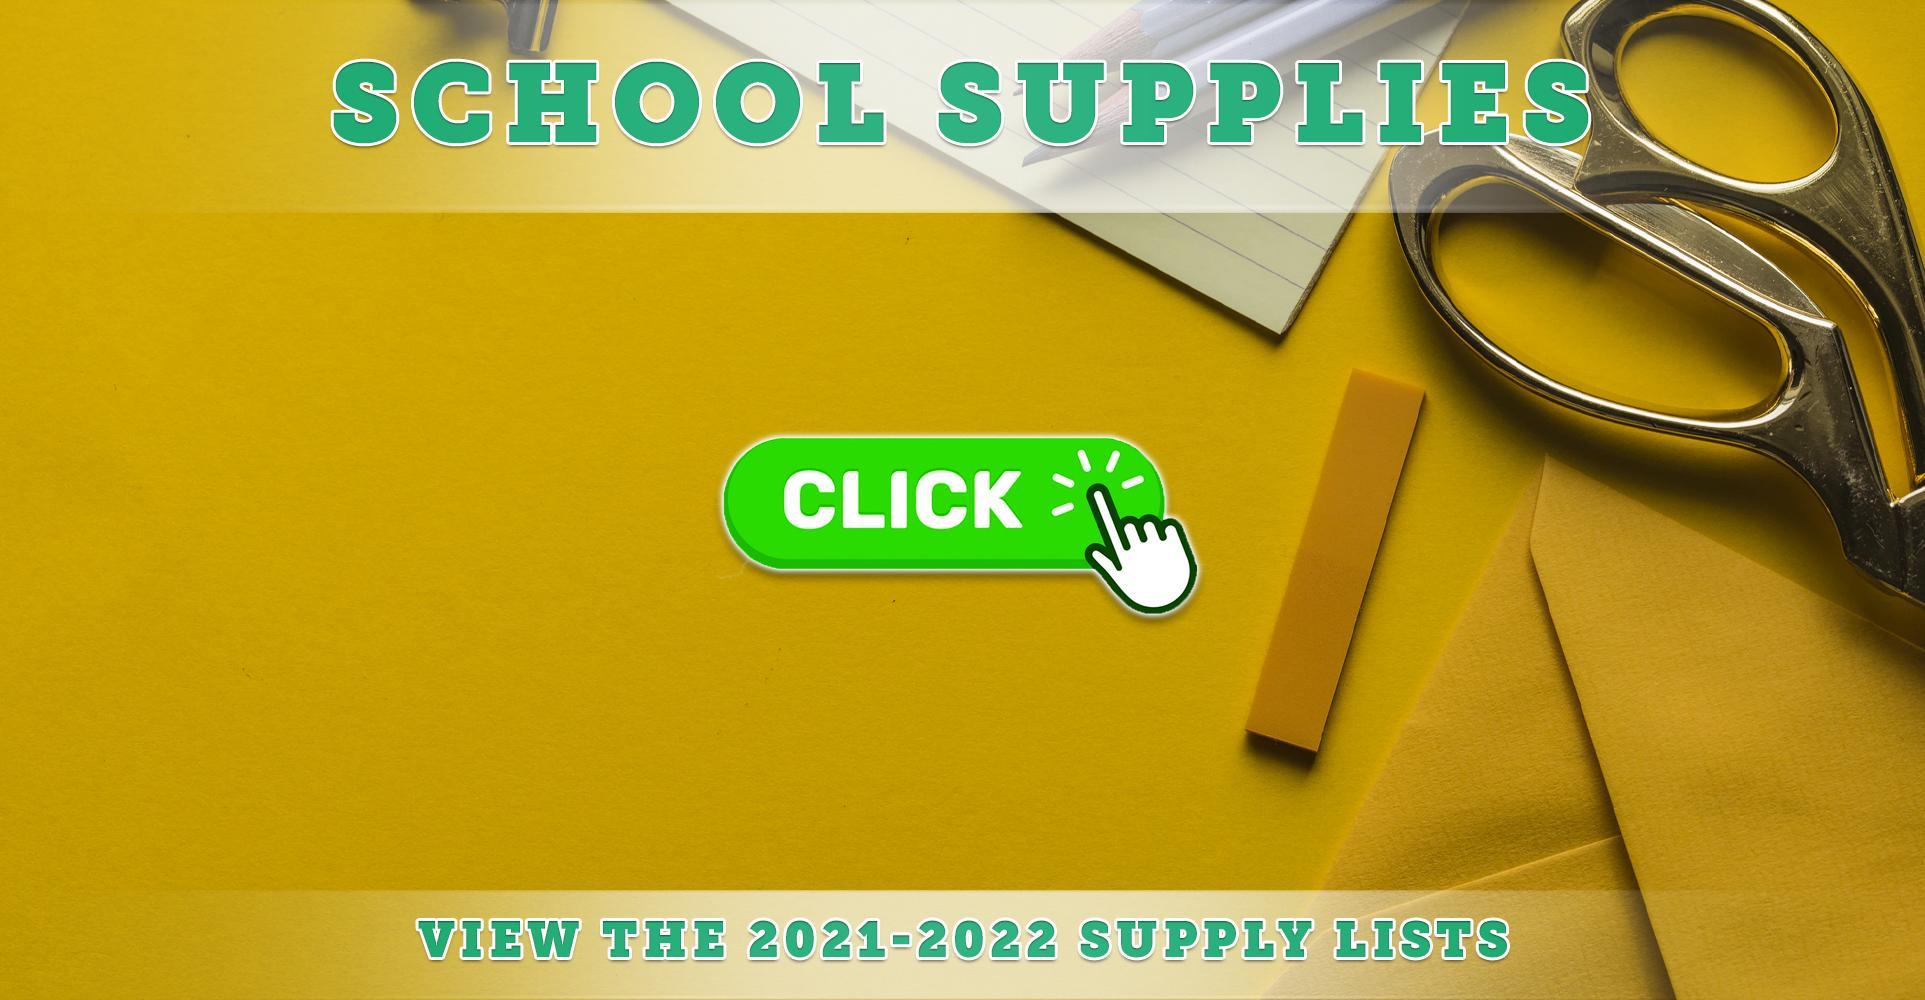 2021-2022 School Supply Lists Now Available